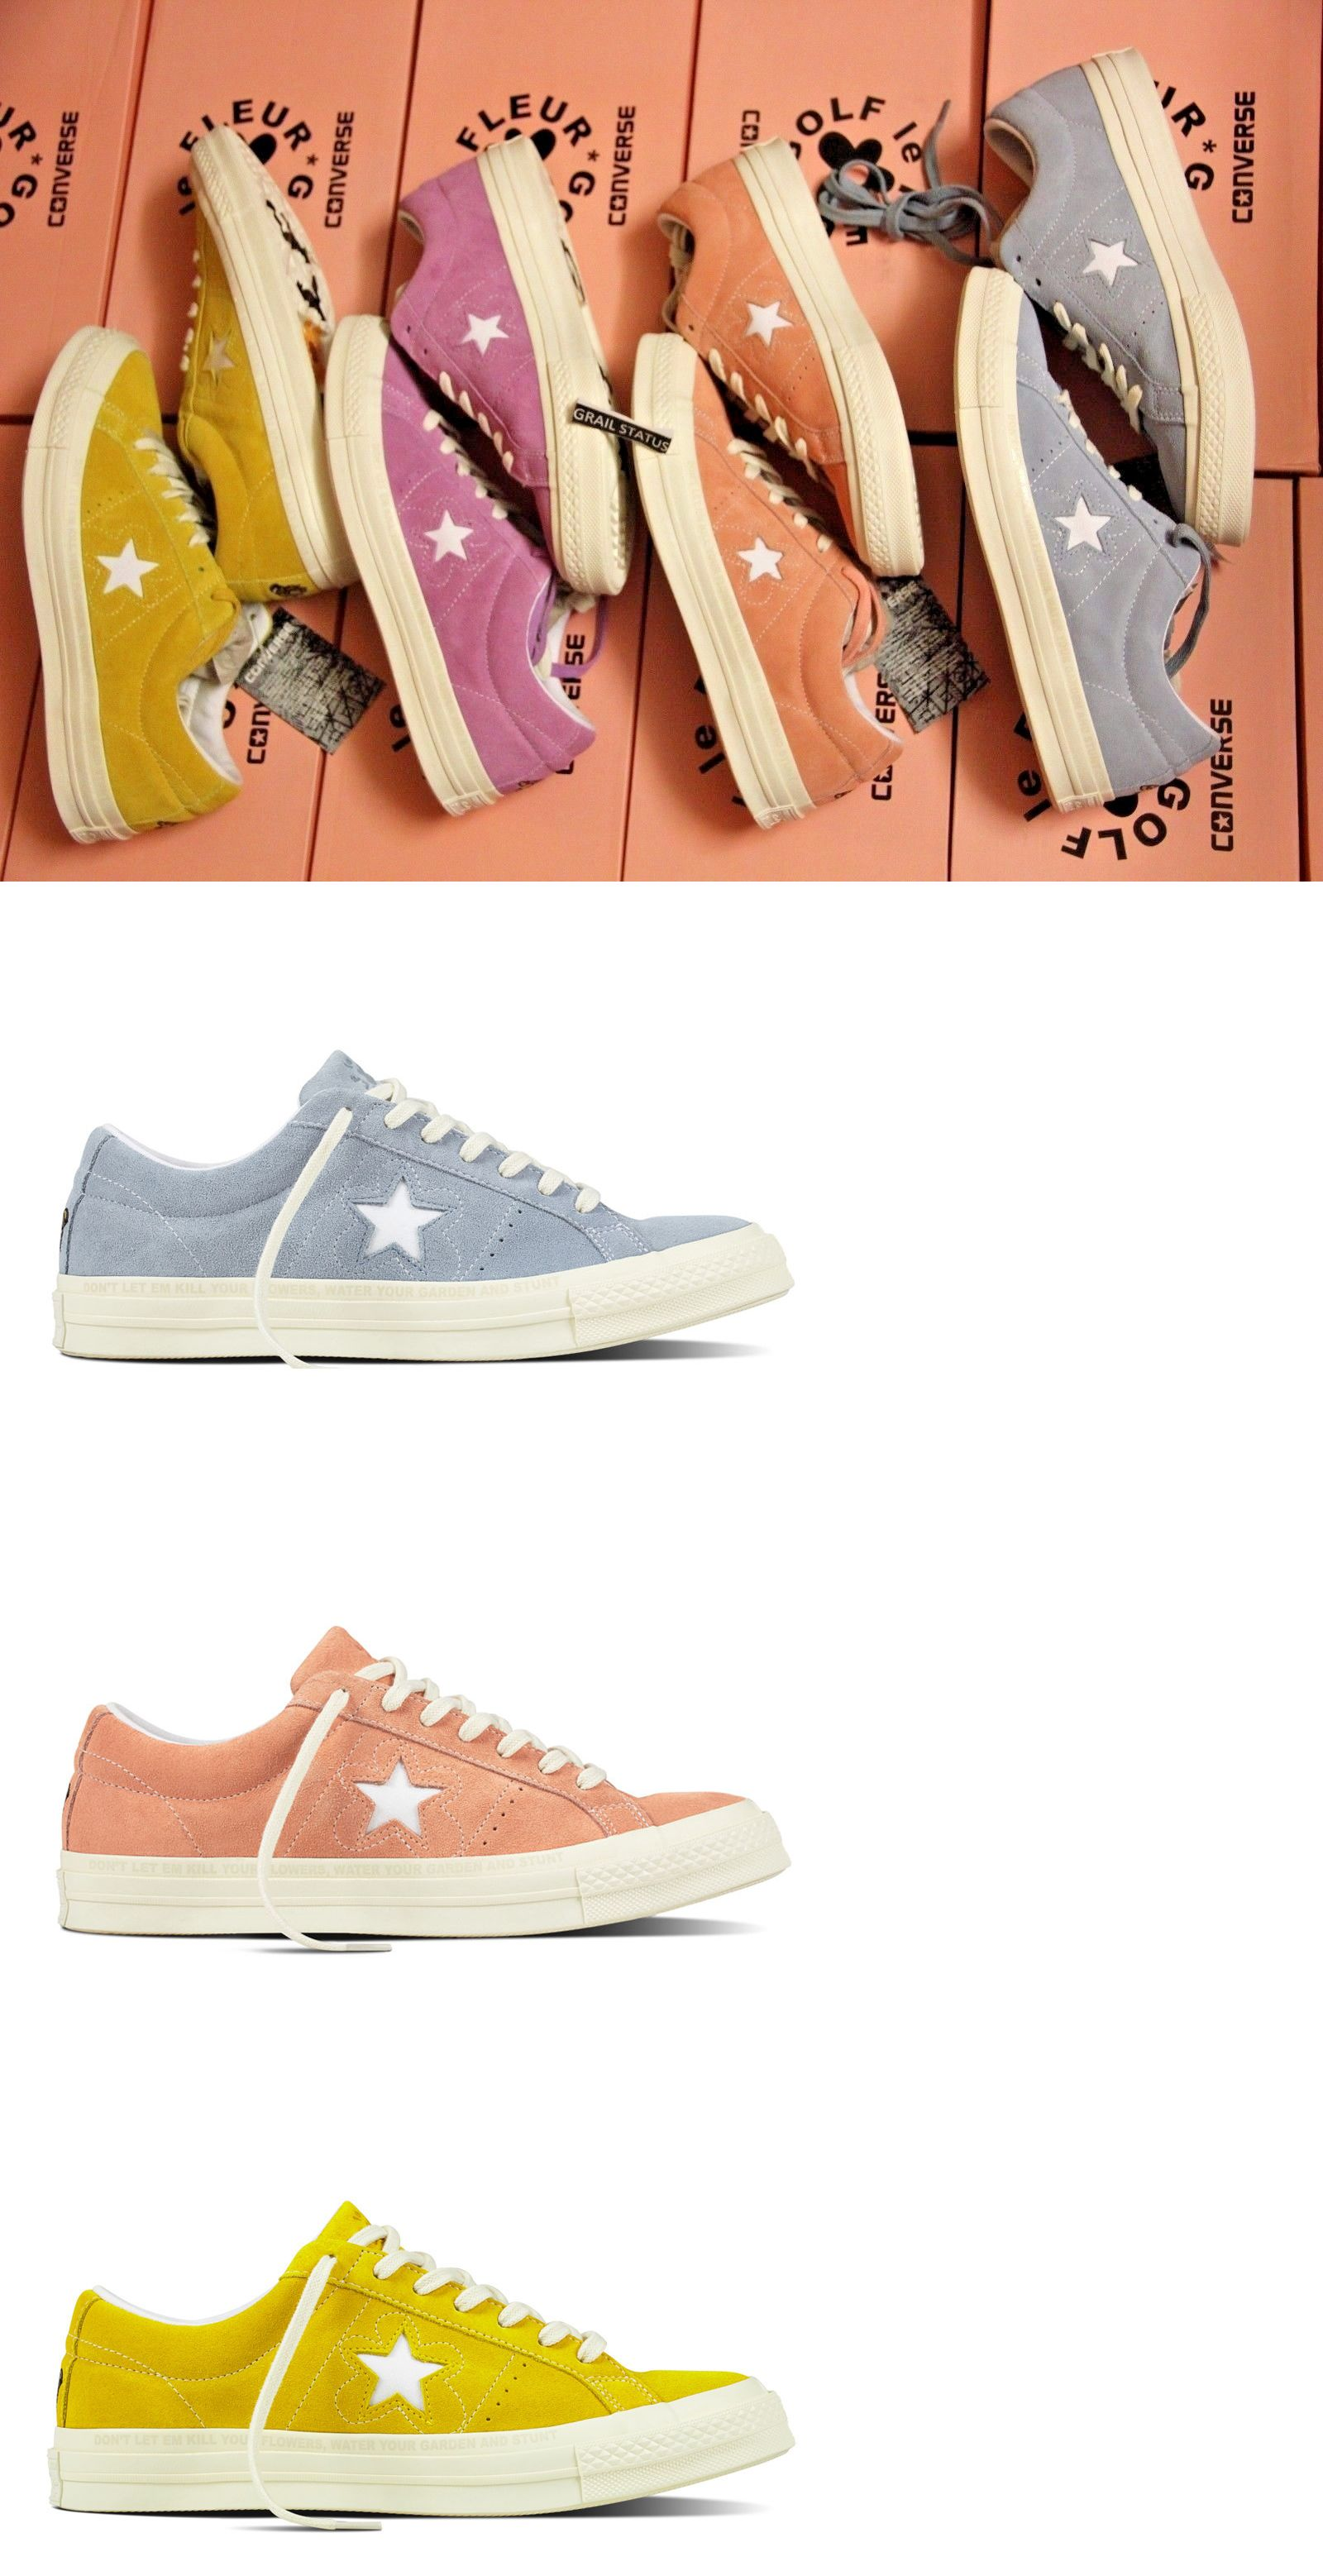 975738d9352255 Athletic 15709  Converse One Star X Golf Le Fleur Suede Tyler The Creator  Size 5-10 Limited -  BUY IT NOW ONLY   169.95 on eBay!